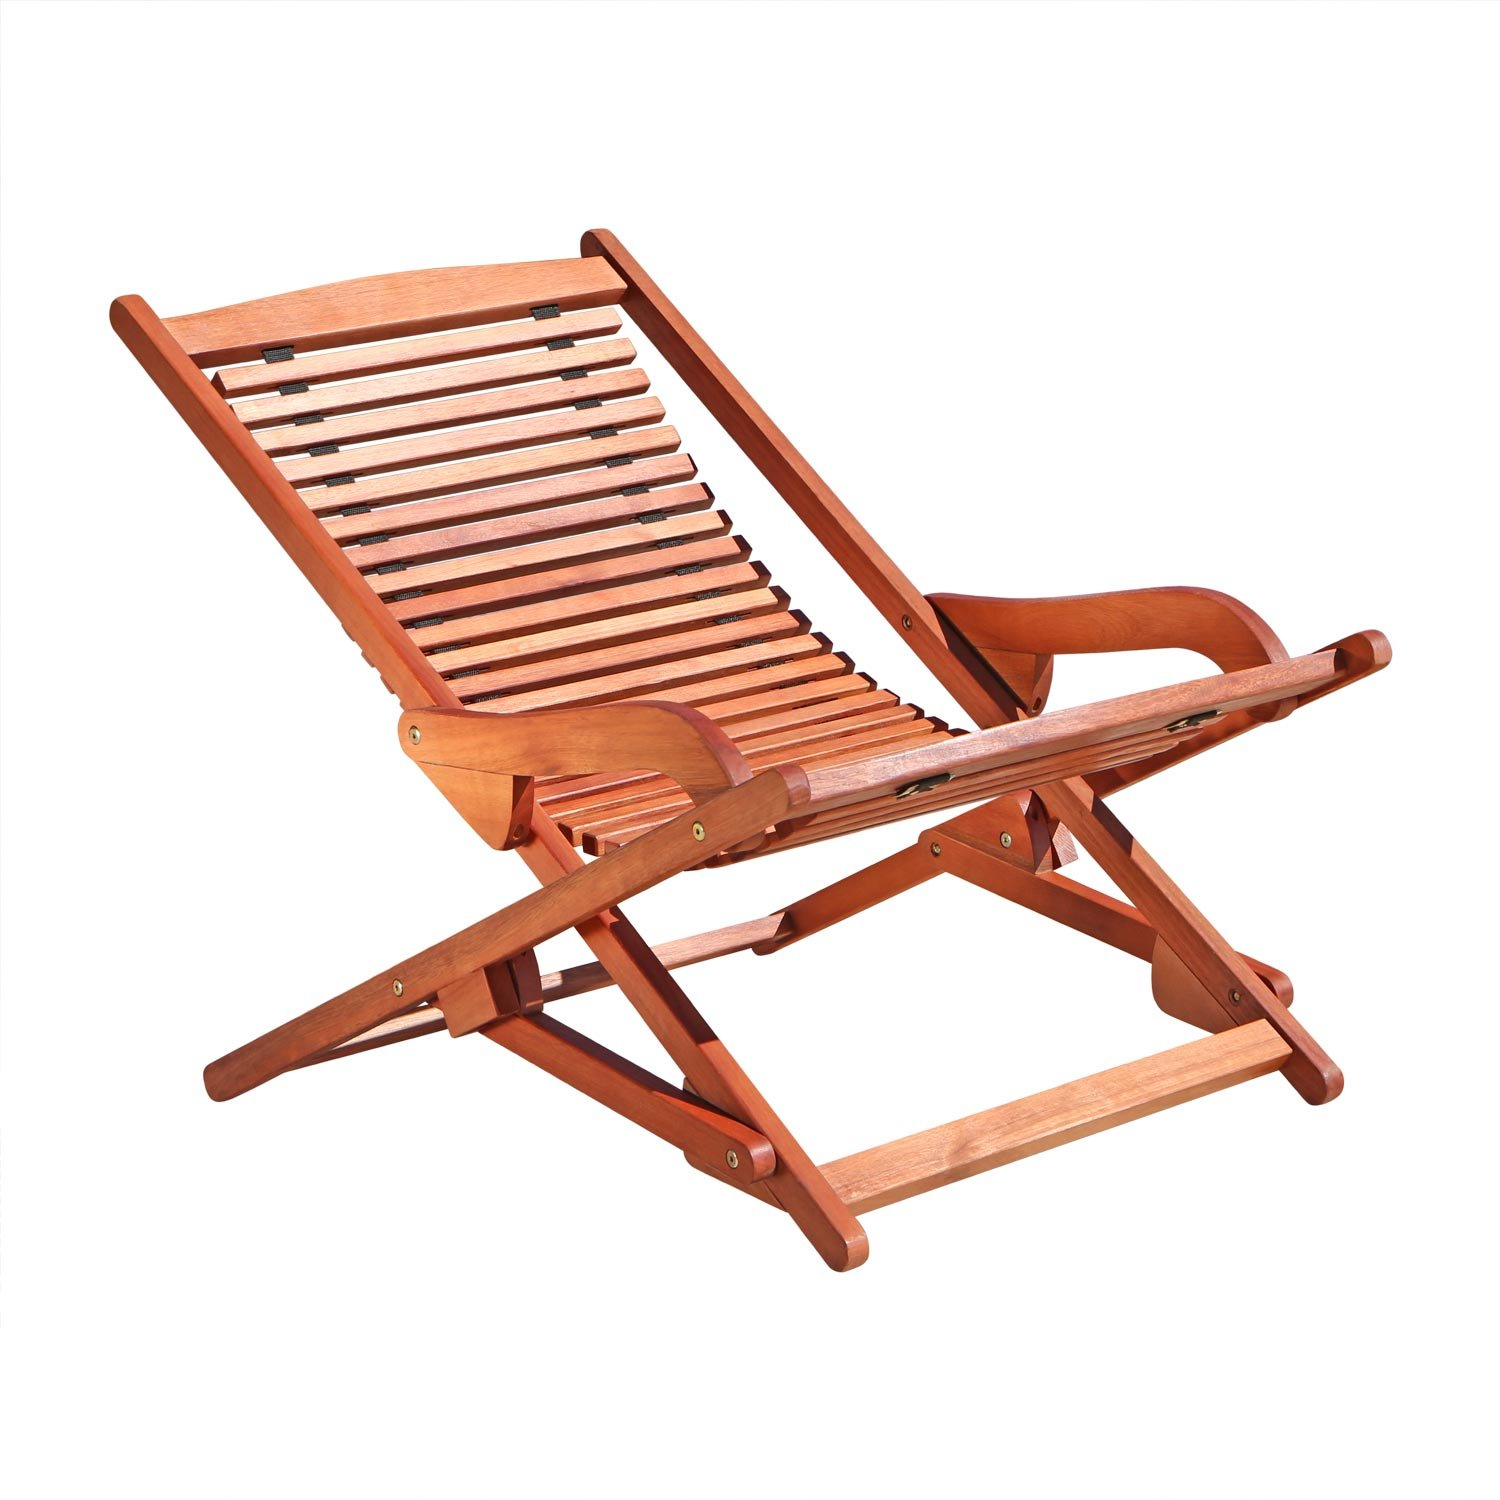 Amazon.com : Vifah V157 Outdoor Wood Folding Lounge, Natural Wood Finish,  25 By 40 By 28 Inch : Patio Lounge Chairs : Garden U0026 Outdoor